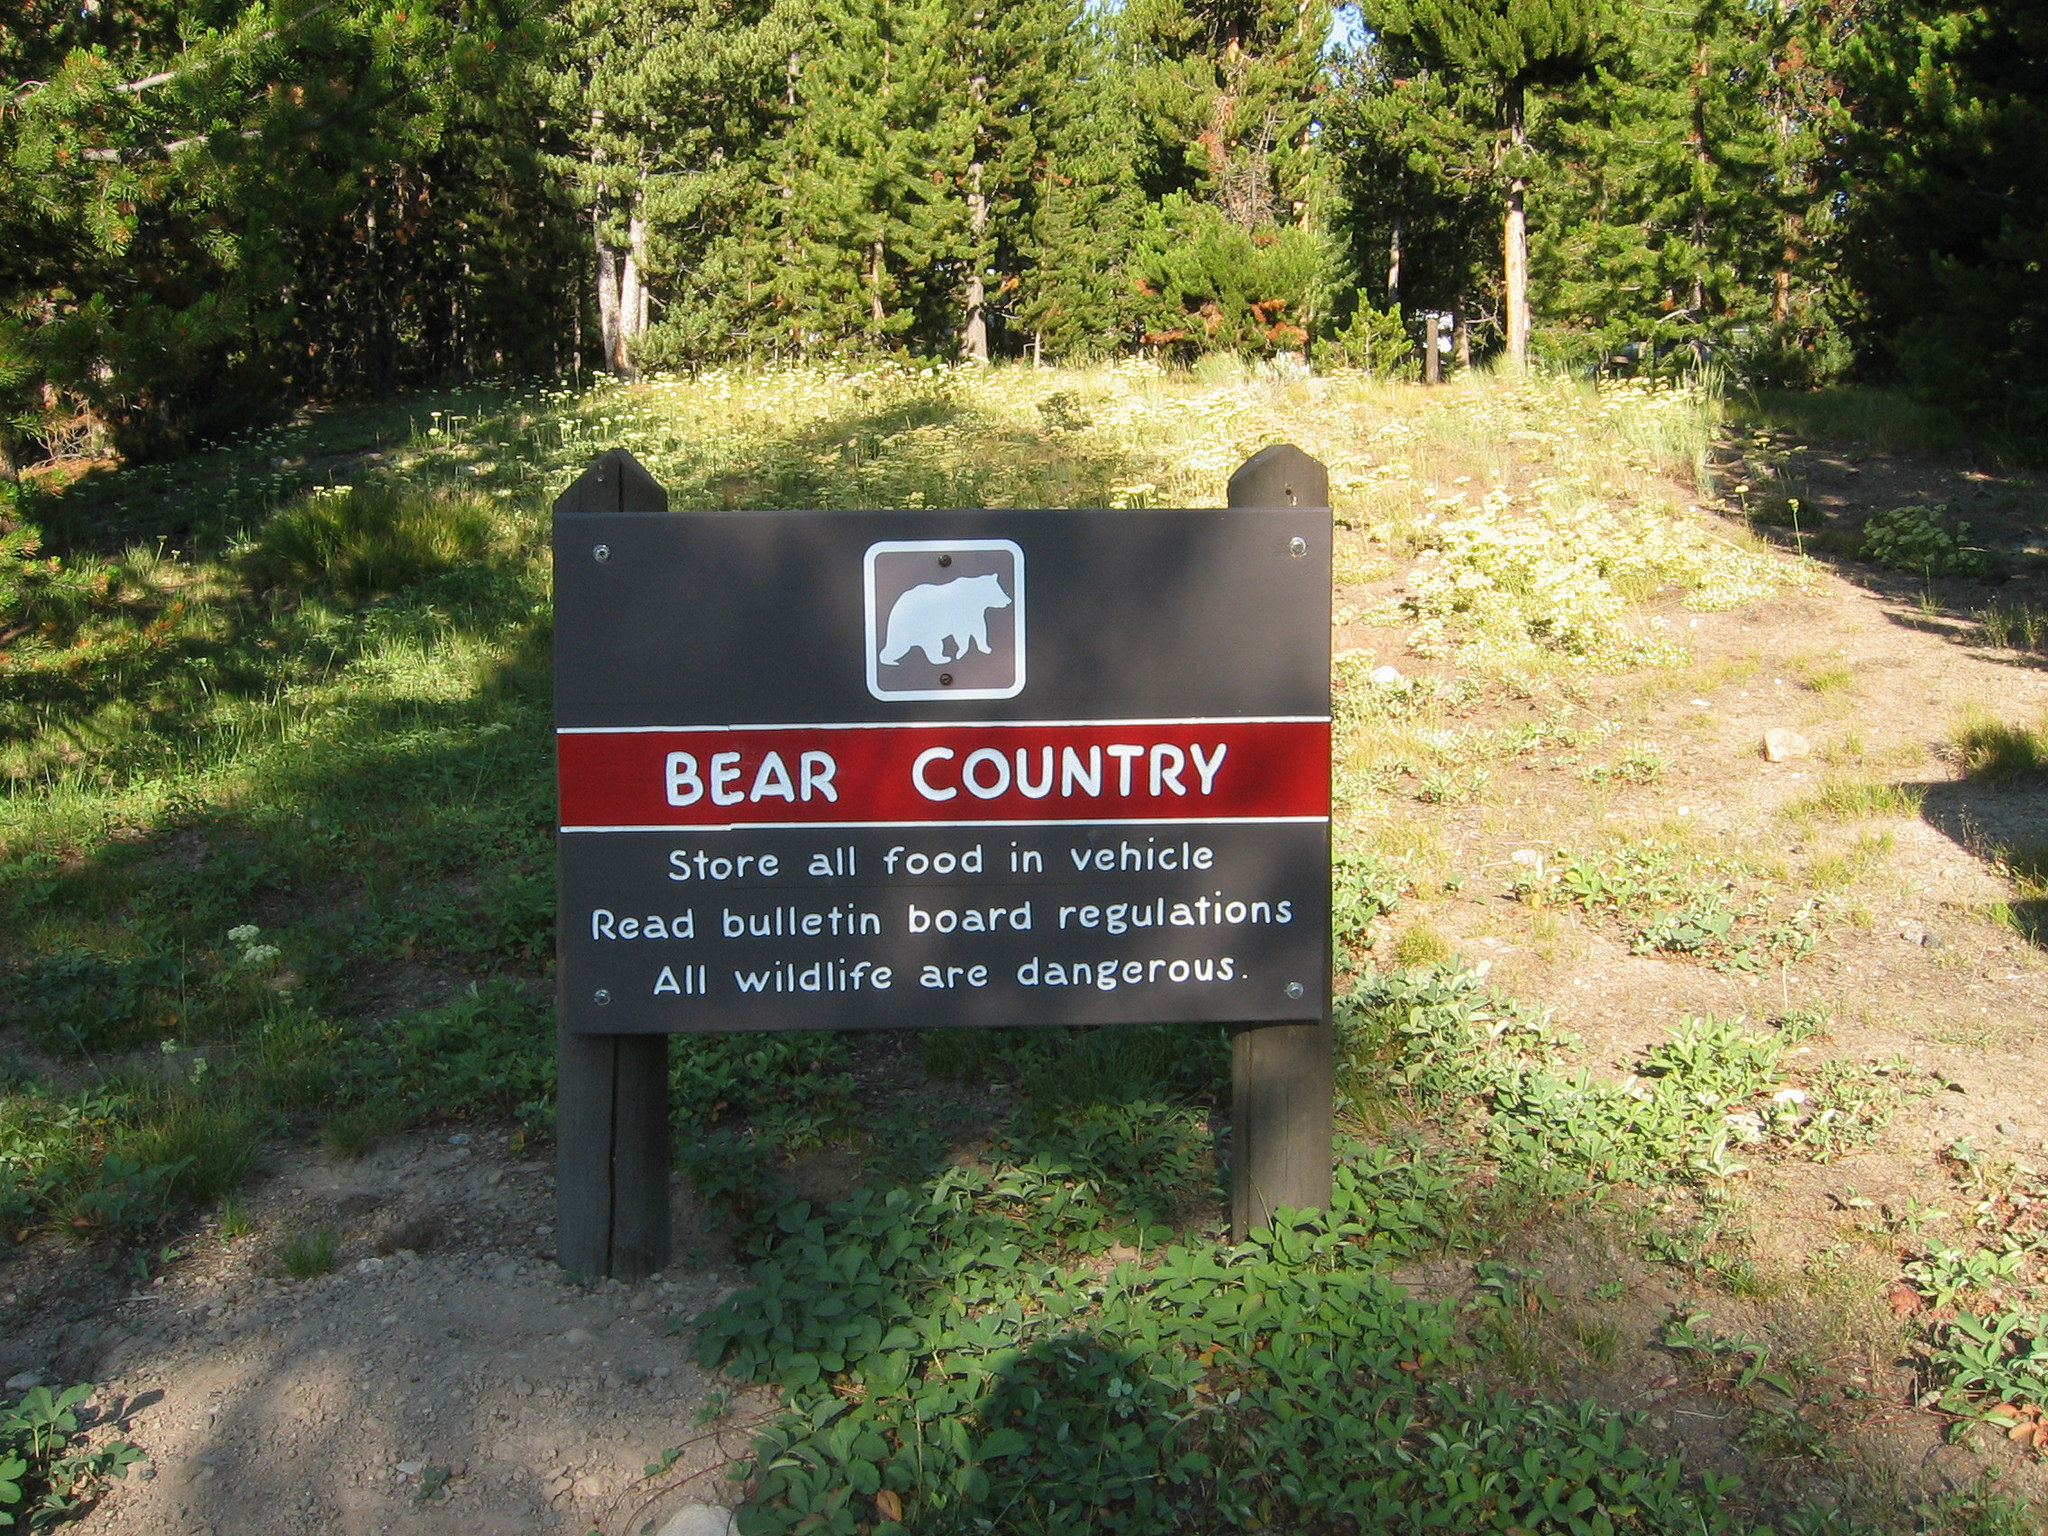 BearCountry NPS